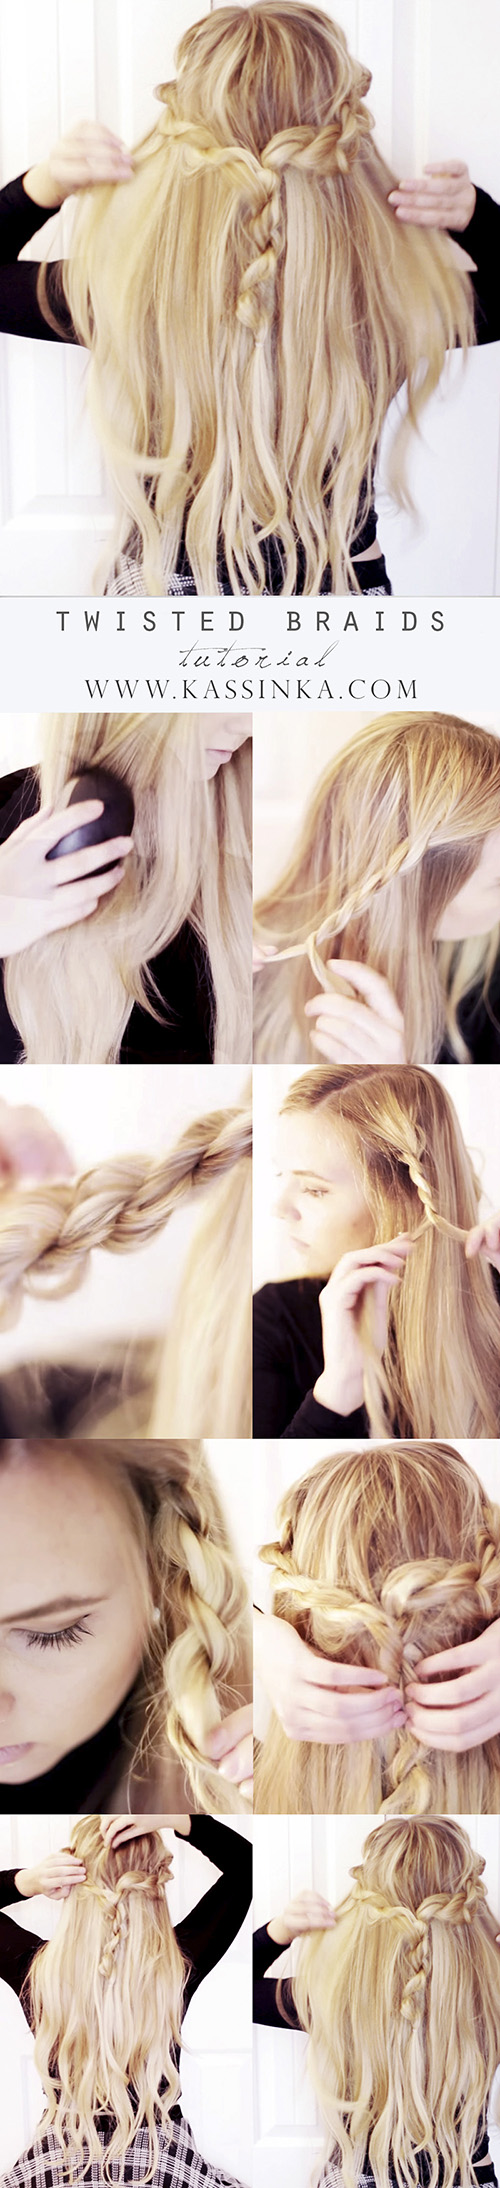 twisted-braids-hair-tutorial-kassinka3